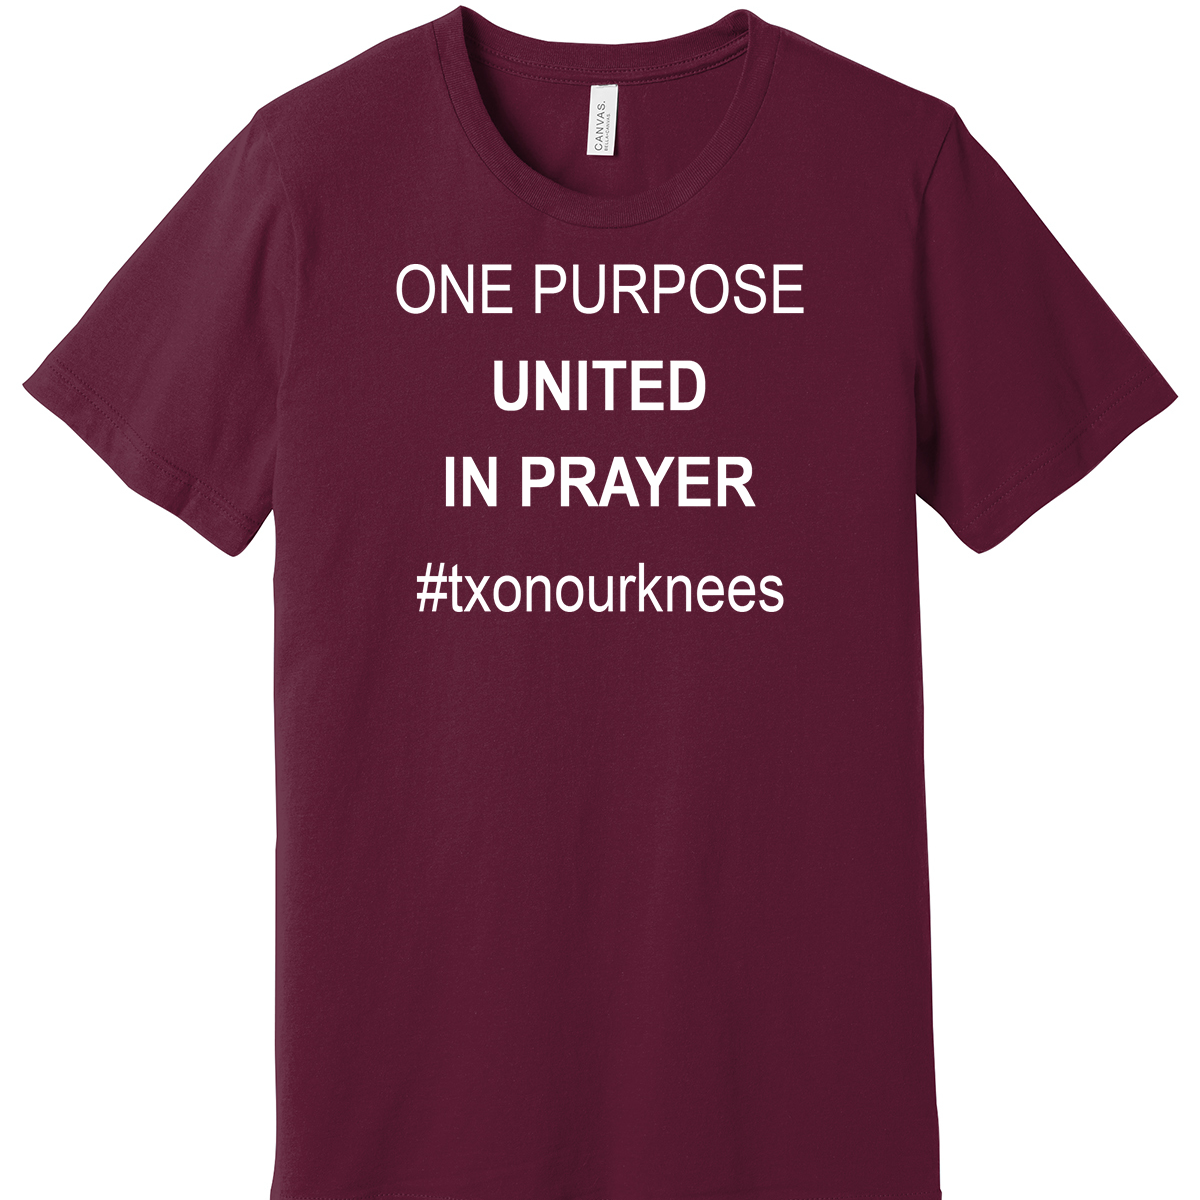 One Purpose United in Prayer